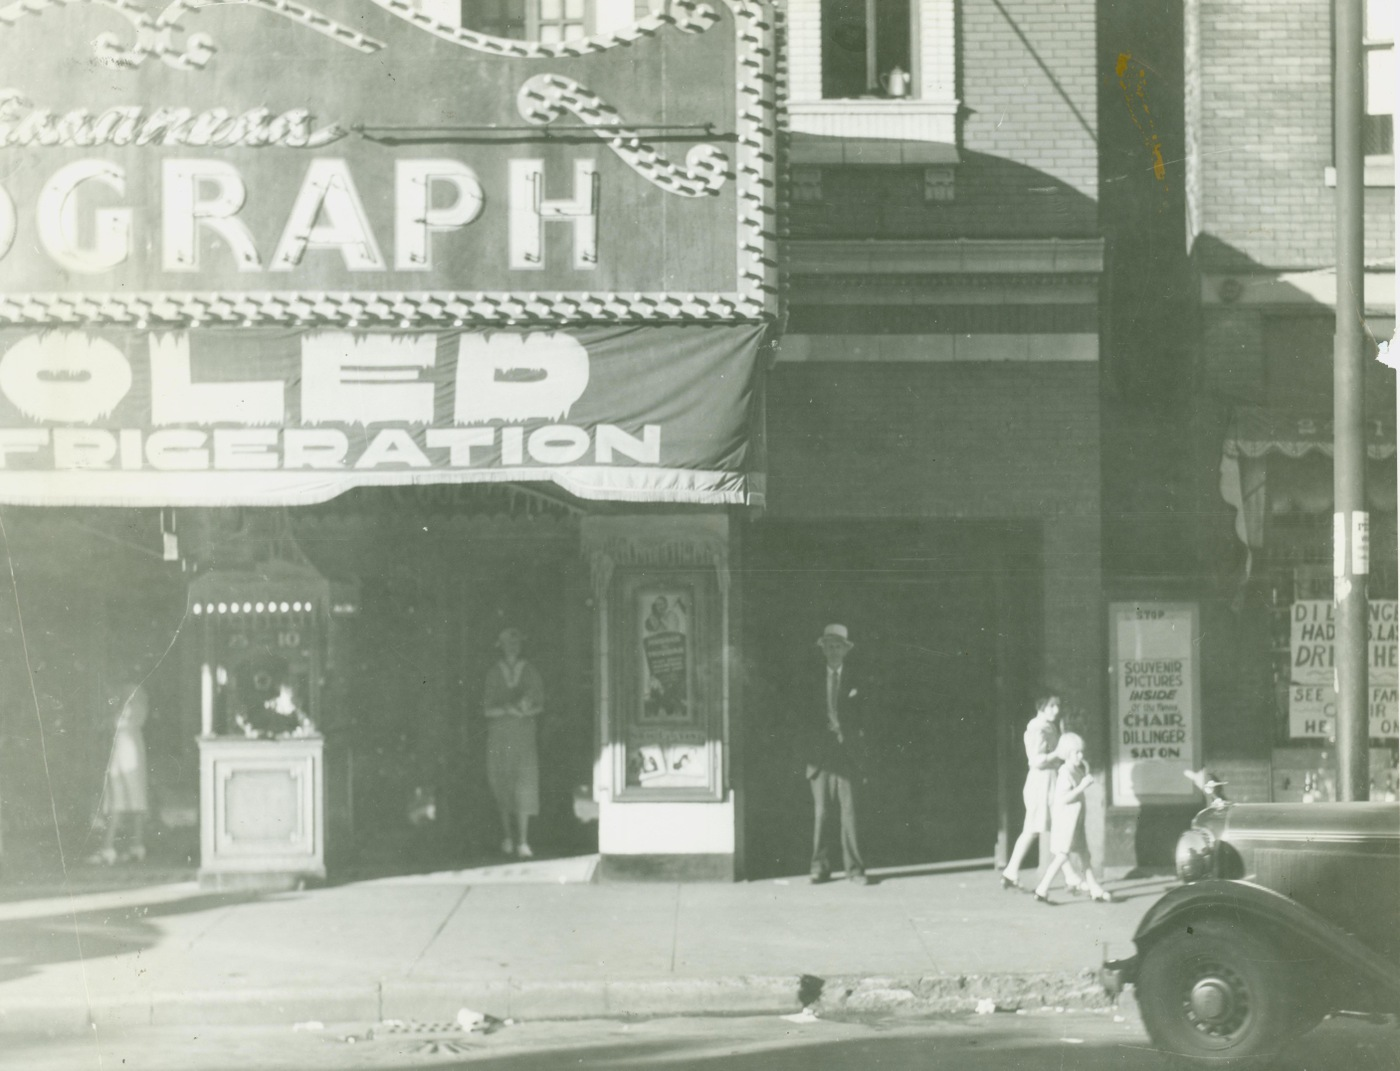 The Biograph Theater in Chicago, Illinois, where John Dillinger spent the last hours of